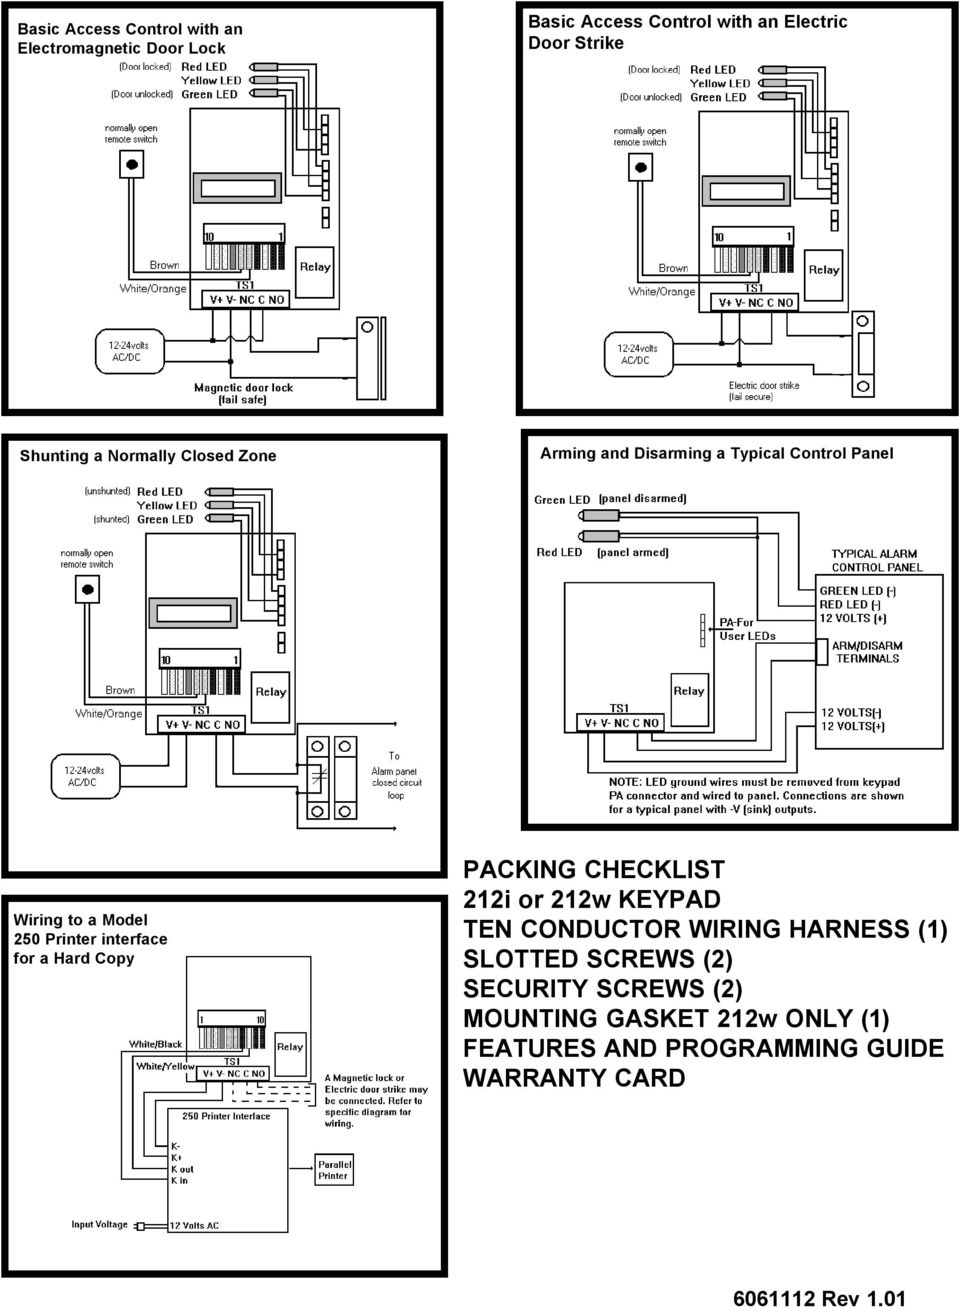 features and programming guide commandandcontrolseries pdf  iei keypads wiring diagram wiring